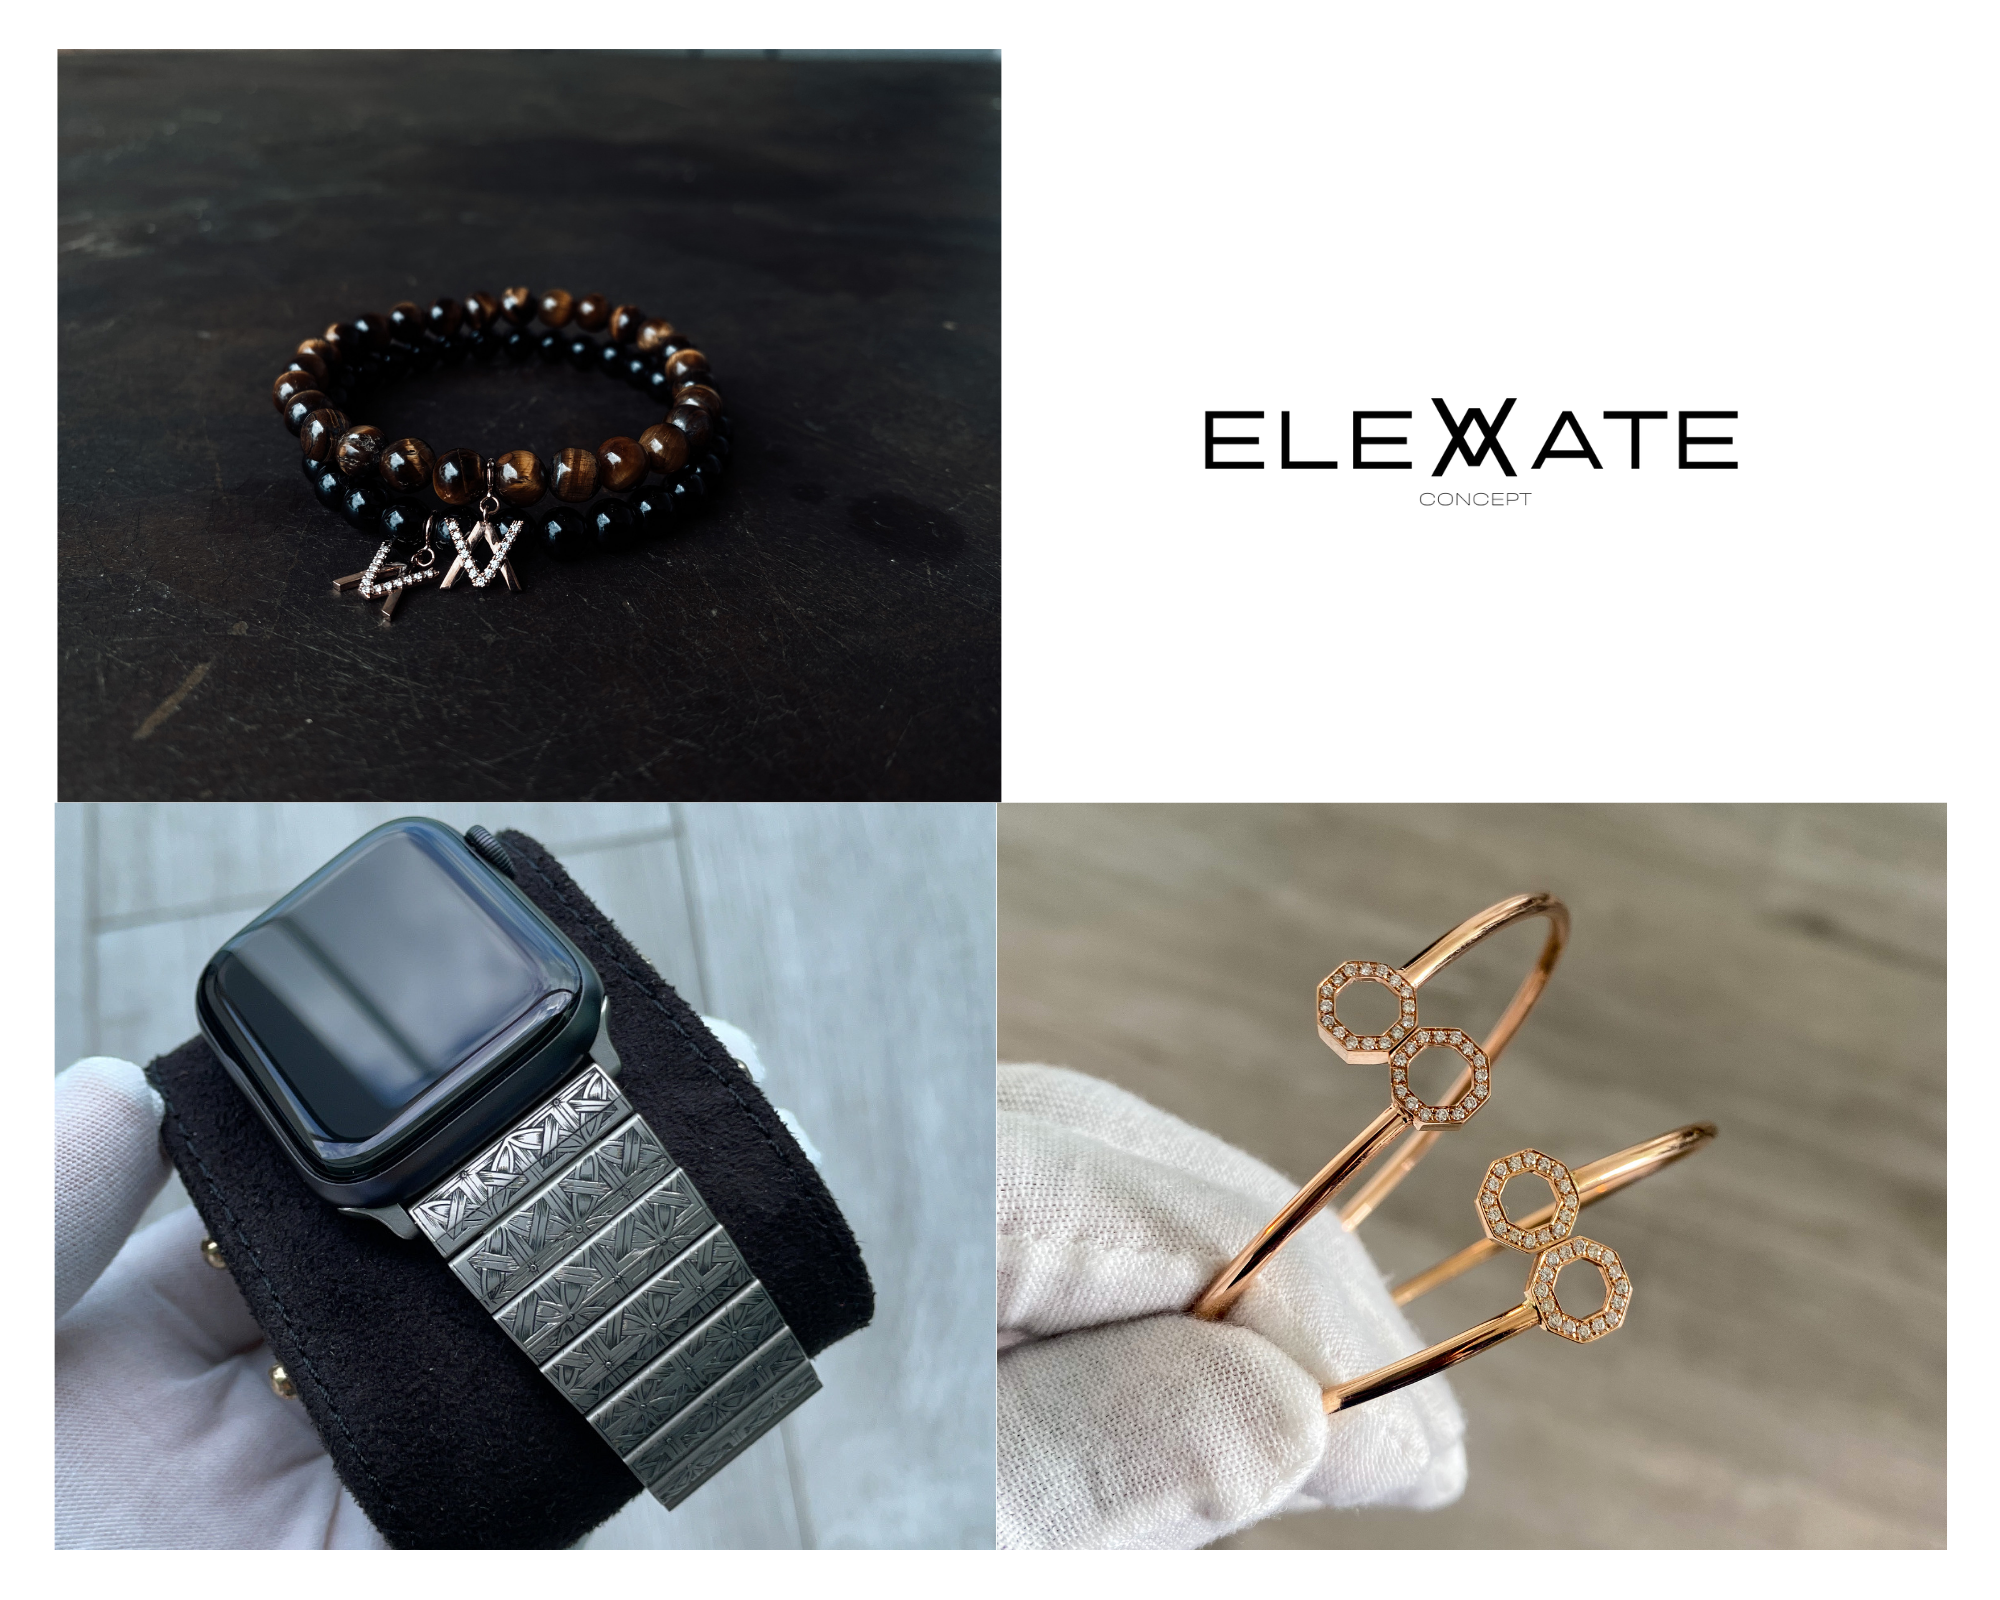 Luxury Fashion Store, Elevate Concept Launches Their Own Apparel And Jewelry Brand, Elevate Concept Club